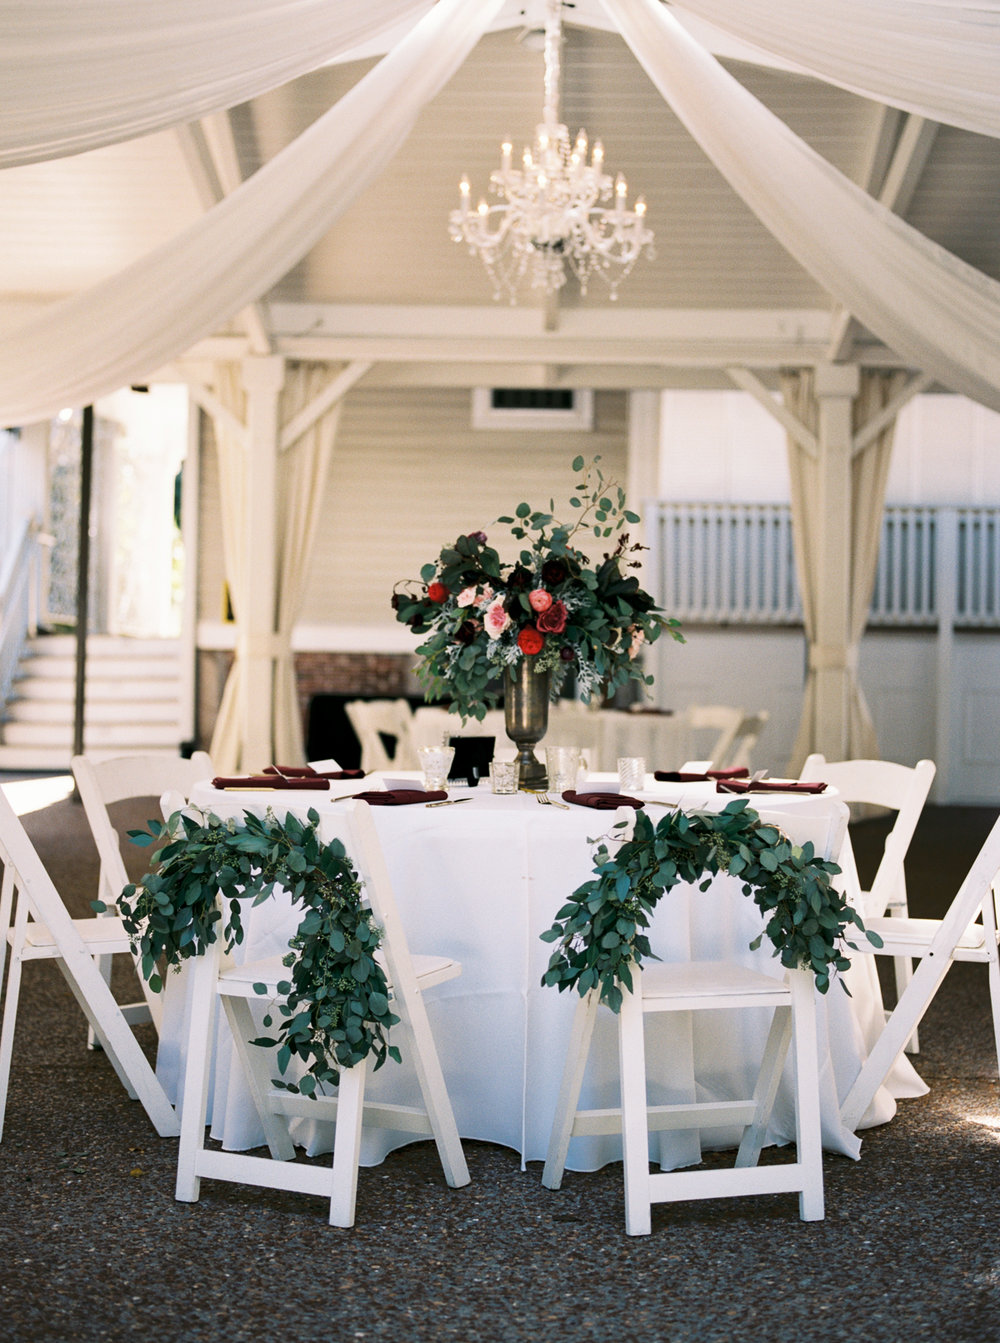 White Gazebo Wedding in Franklin, TN // Burgundy and Deep Red Floral Design